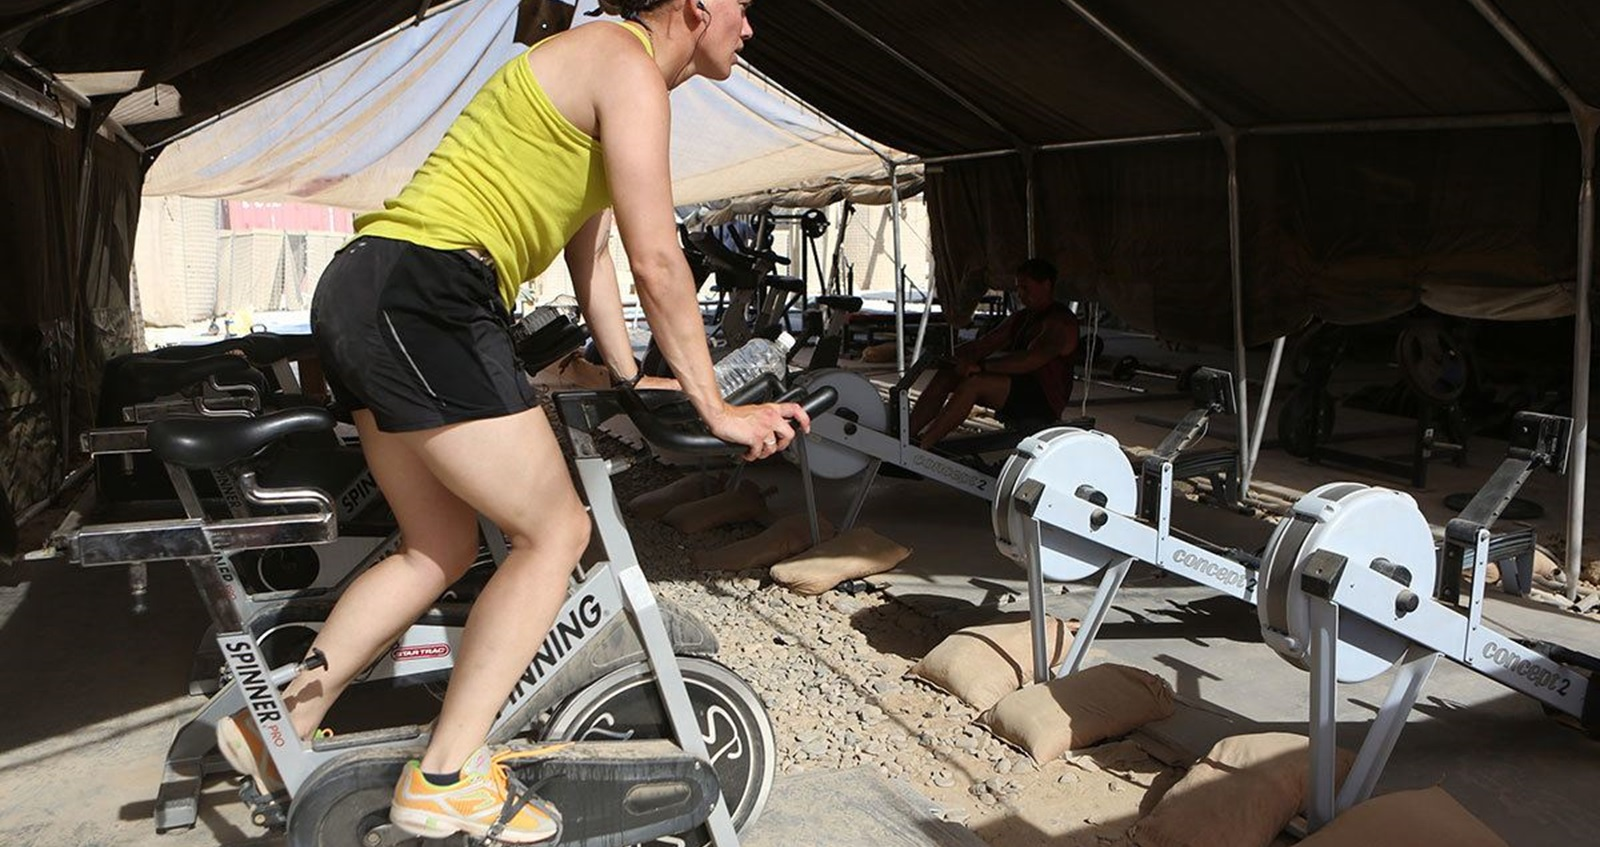 Anna Crossley working out in a basecamp gym in Afghanistan.